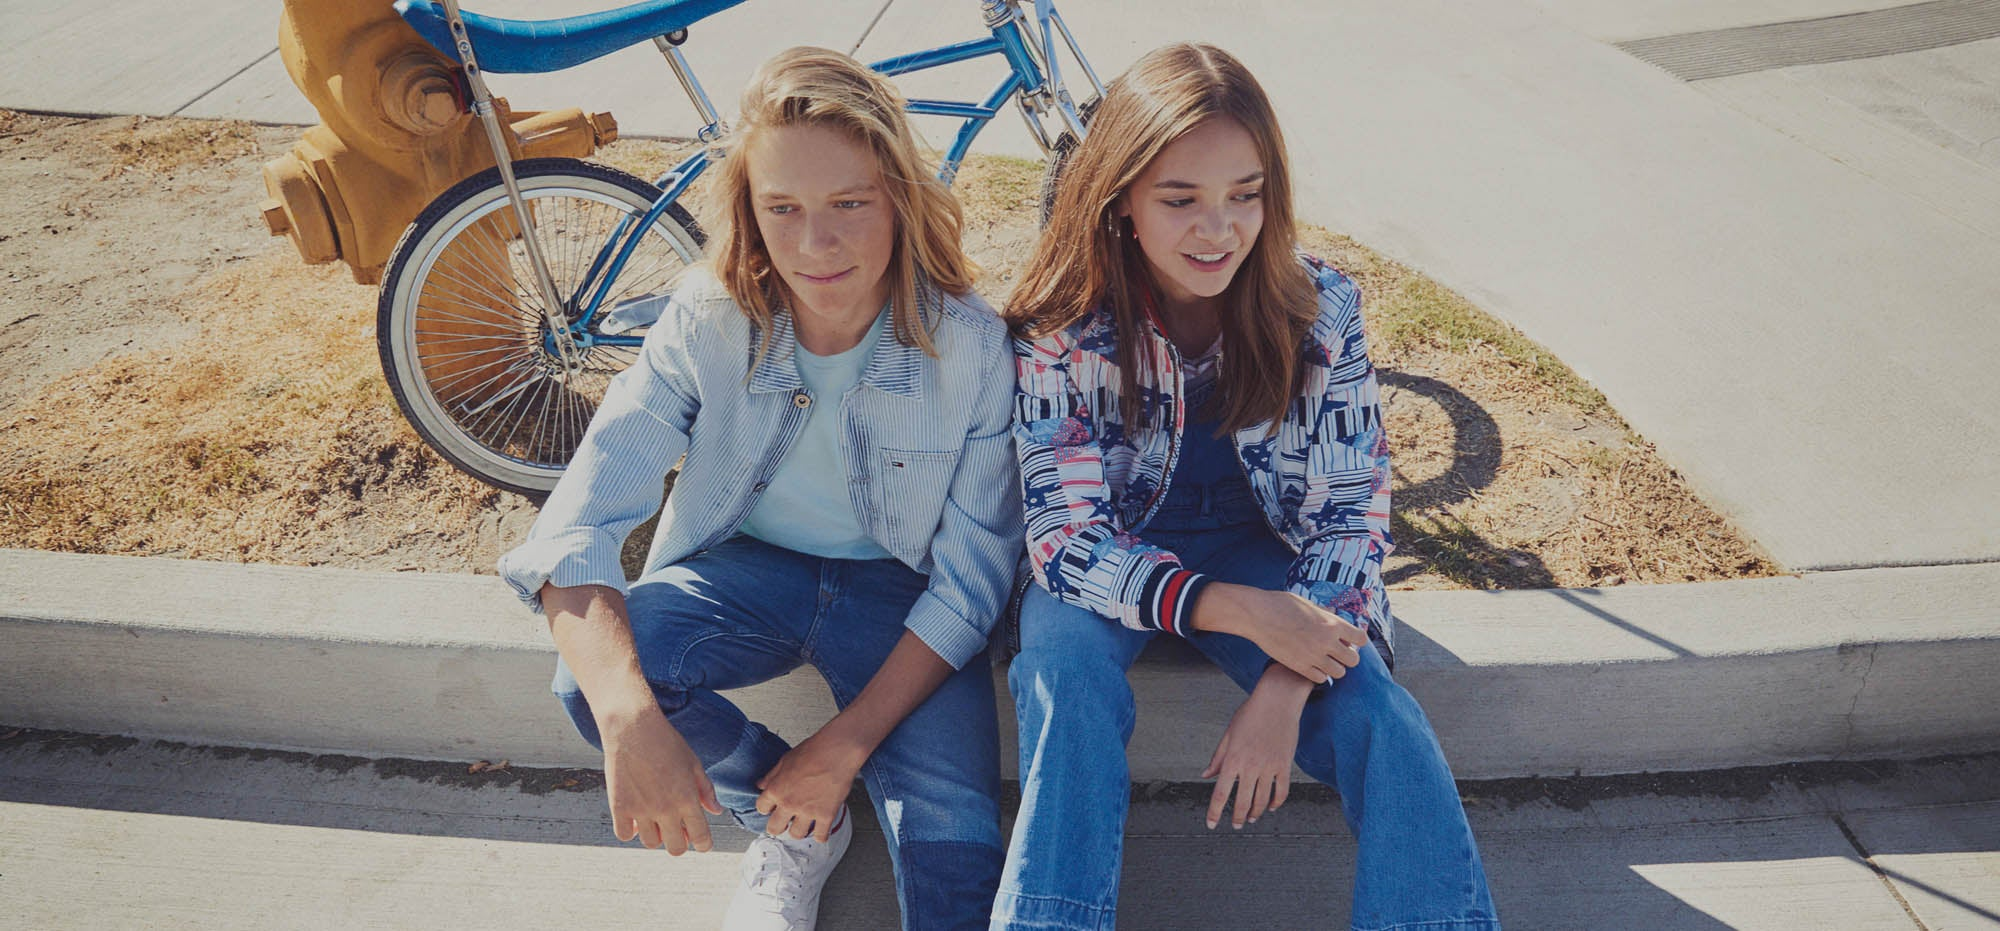 Jeans for teens. Patches. Frayed edges. Rip and repair. New Blues. Two teens wearing new denim styles.